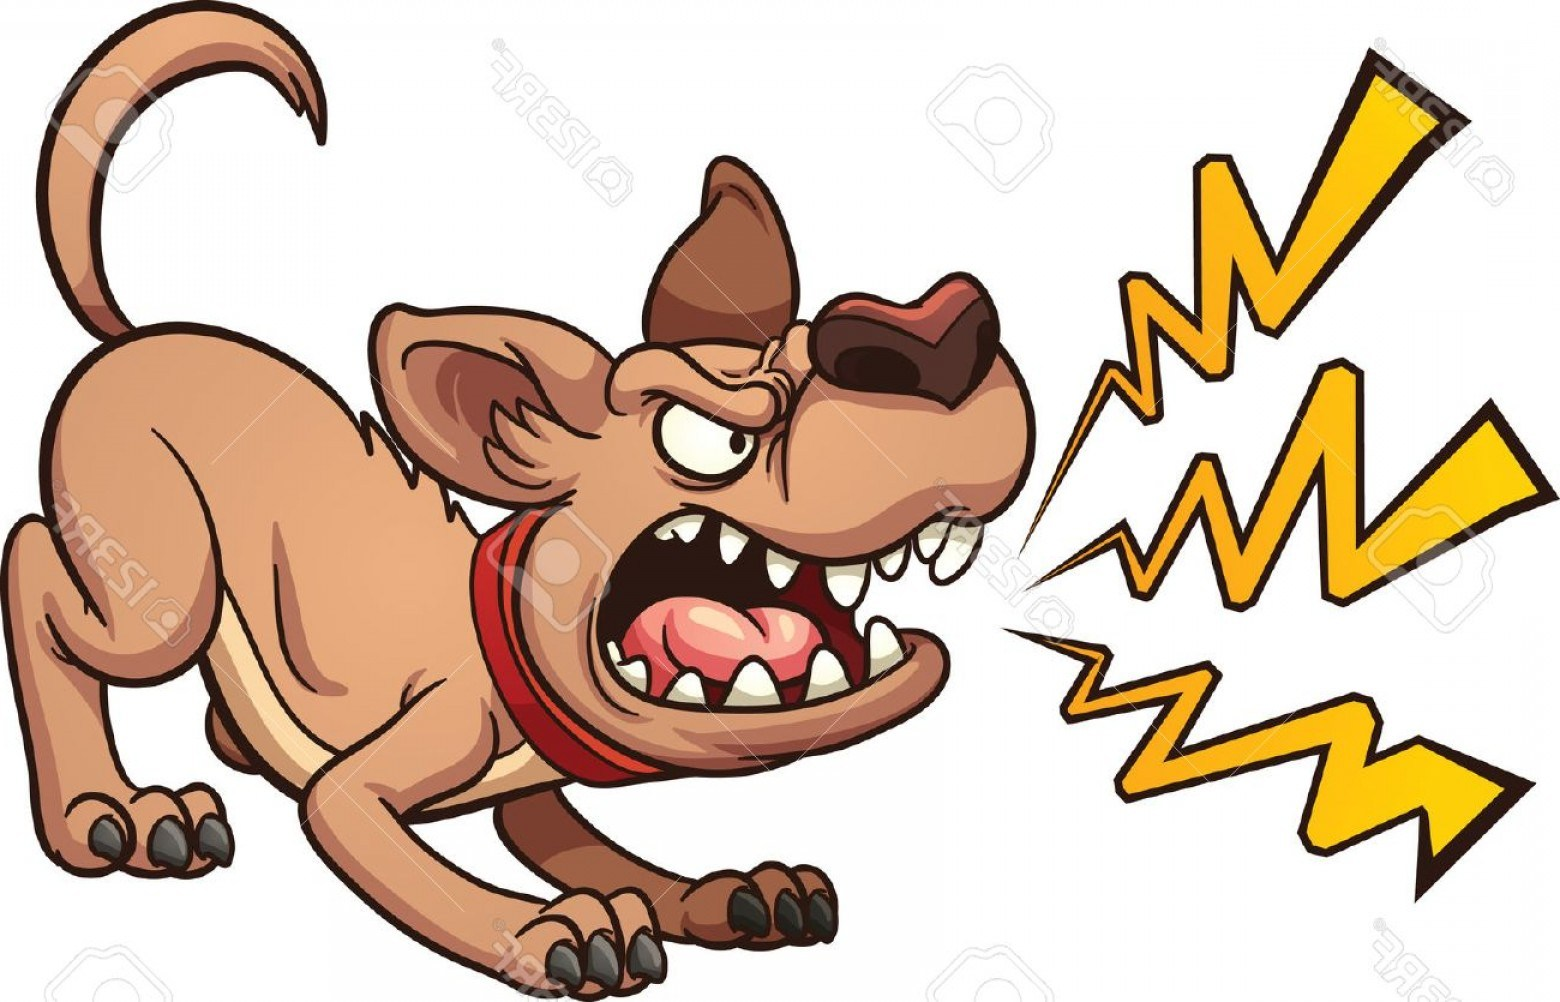 Barking clipart clip freeuse library Barking clipart 5 » Clipart Portal clip freeuse library